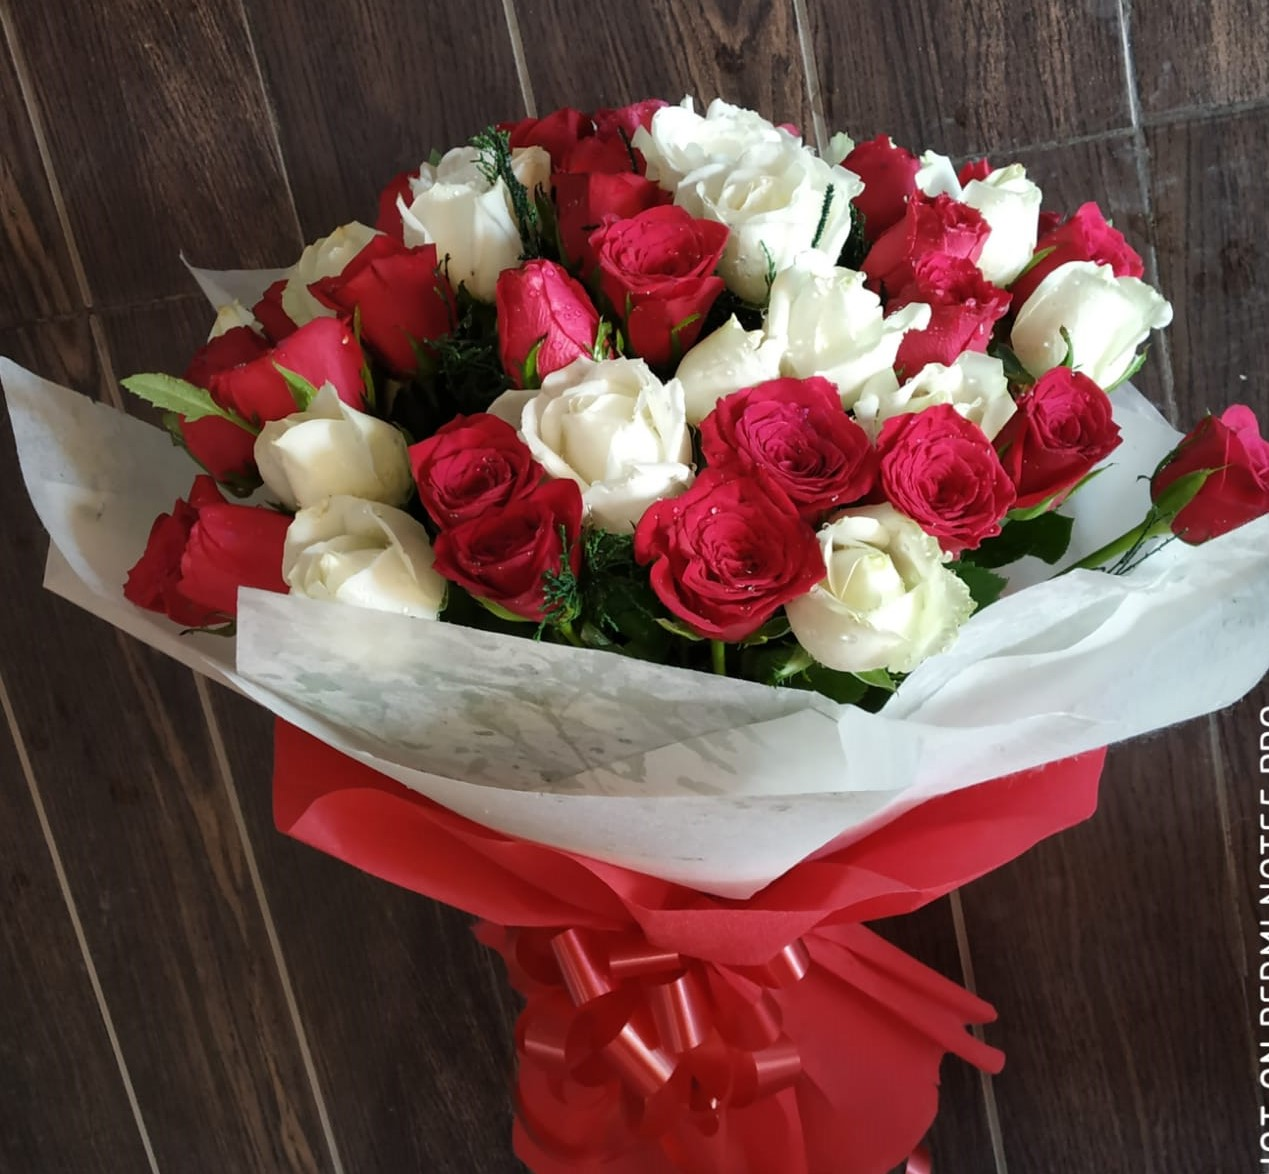 send flower Gadaipur DelhiRed & White Roses in Duble Layer Packing